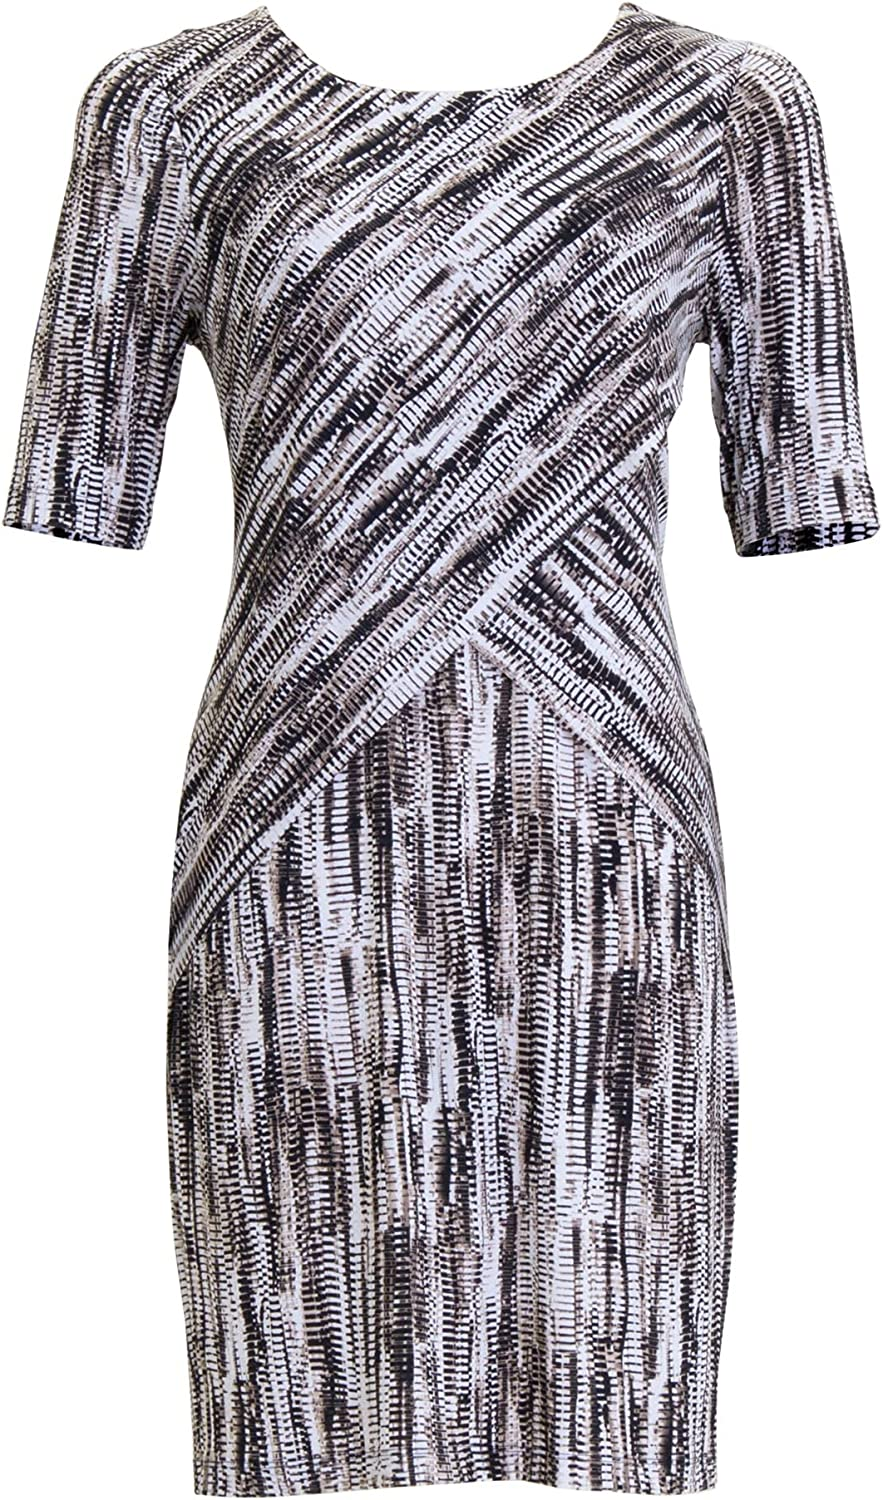 Connected Apparel Womens Beige Printed Short Sleeve Jewel Neck Knee Length Sheath Wear to Work Dress Size 24W